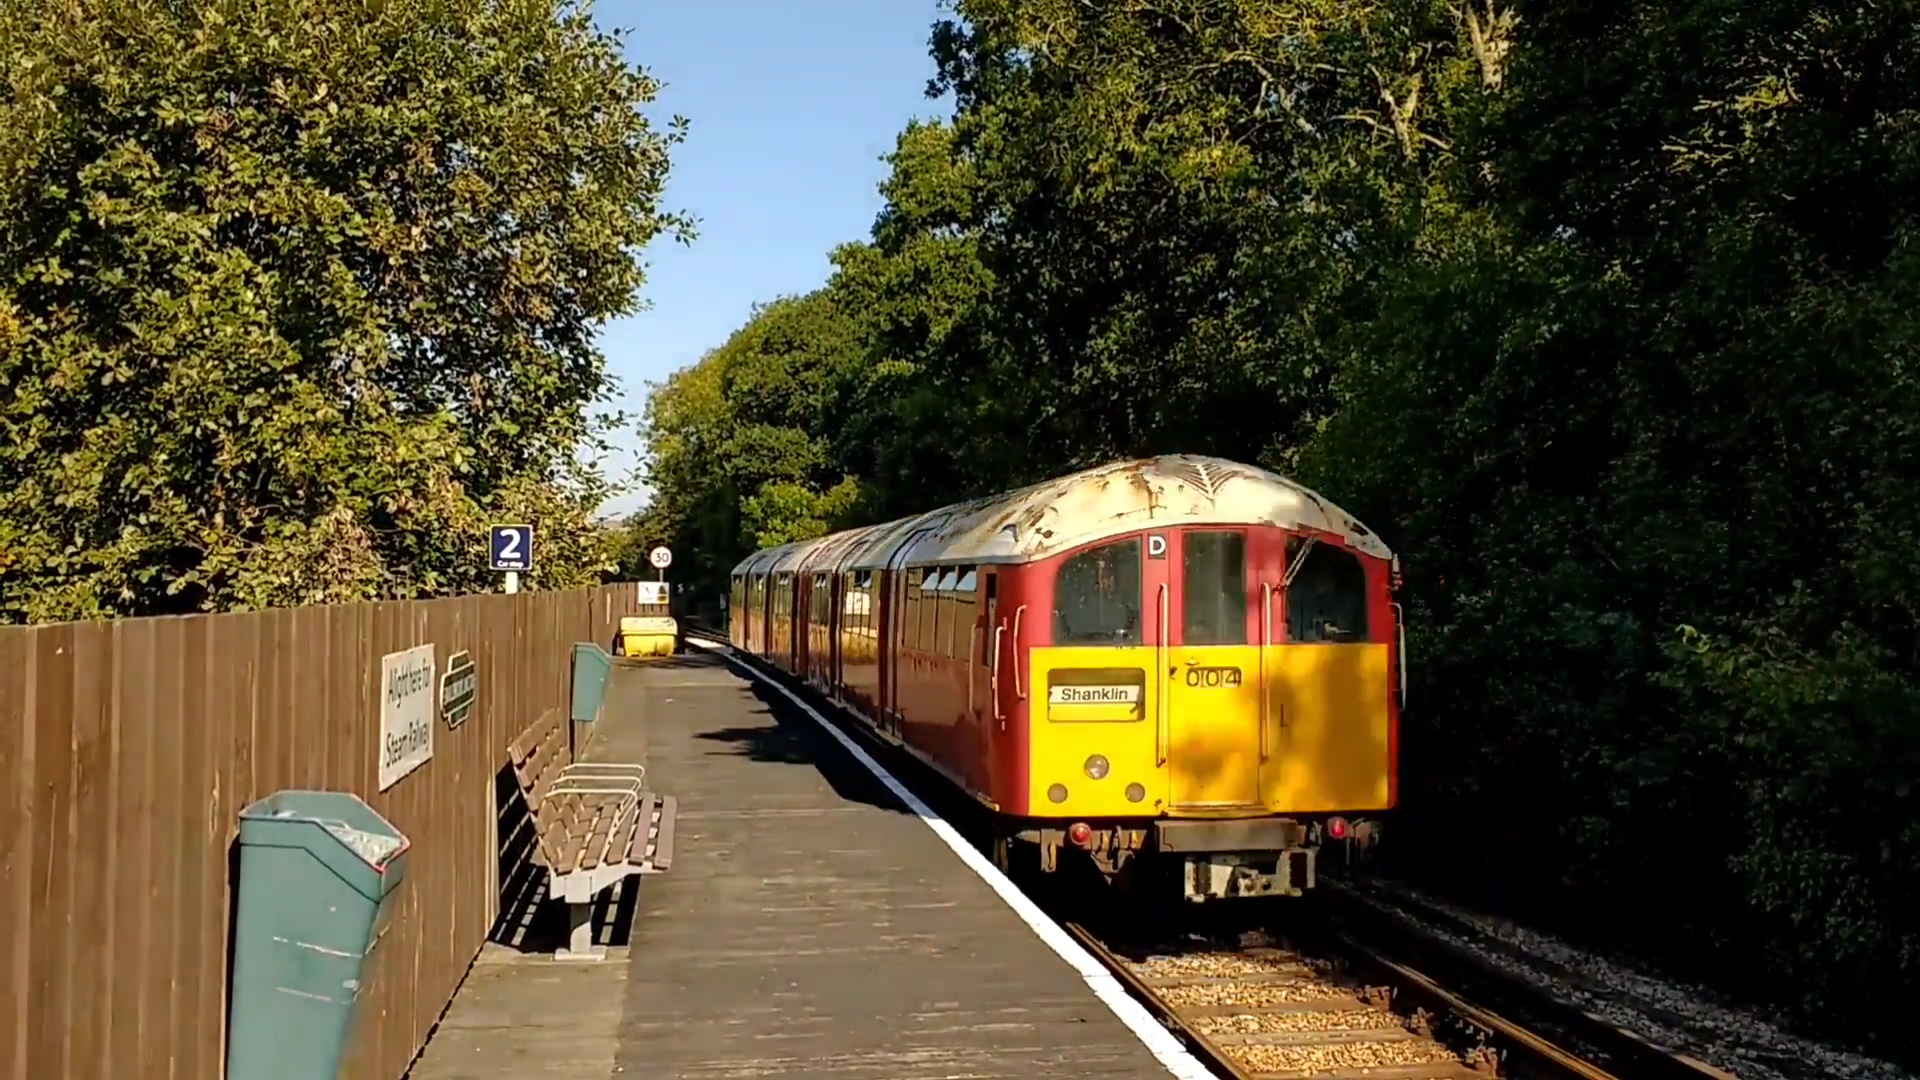 SWR Island Line Class 483 train at Smallbrook Junction